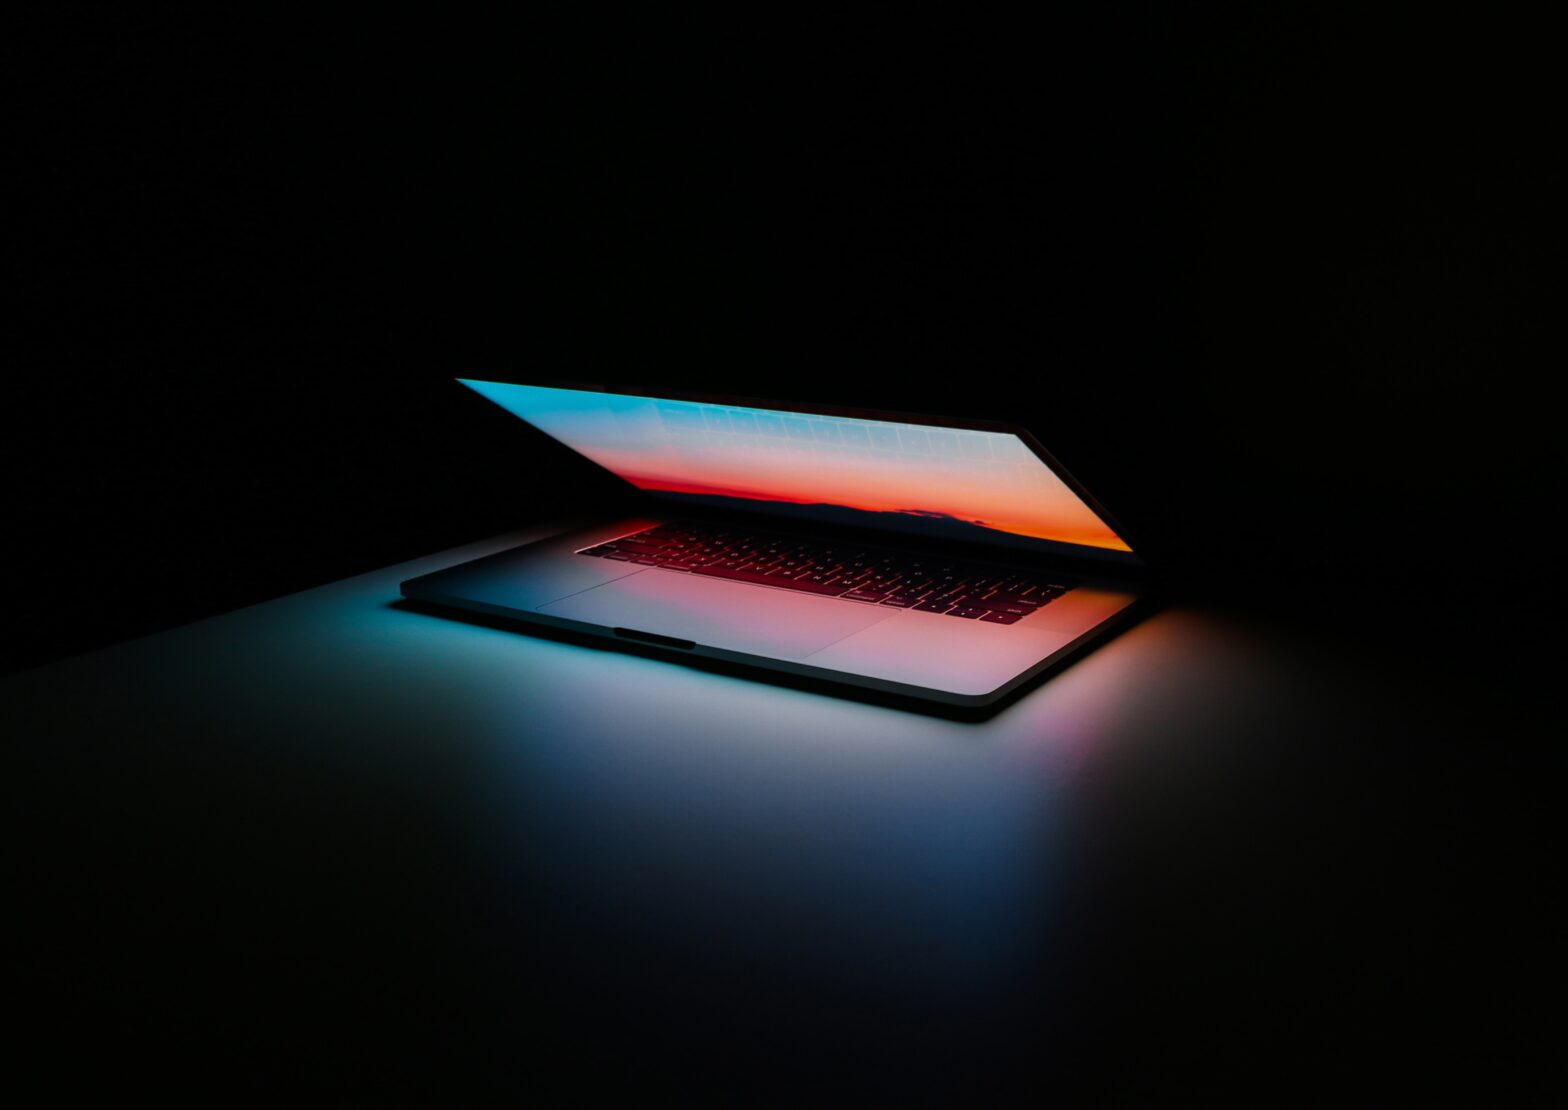 supply chain computer glowing in dark room